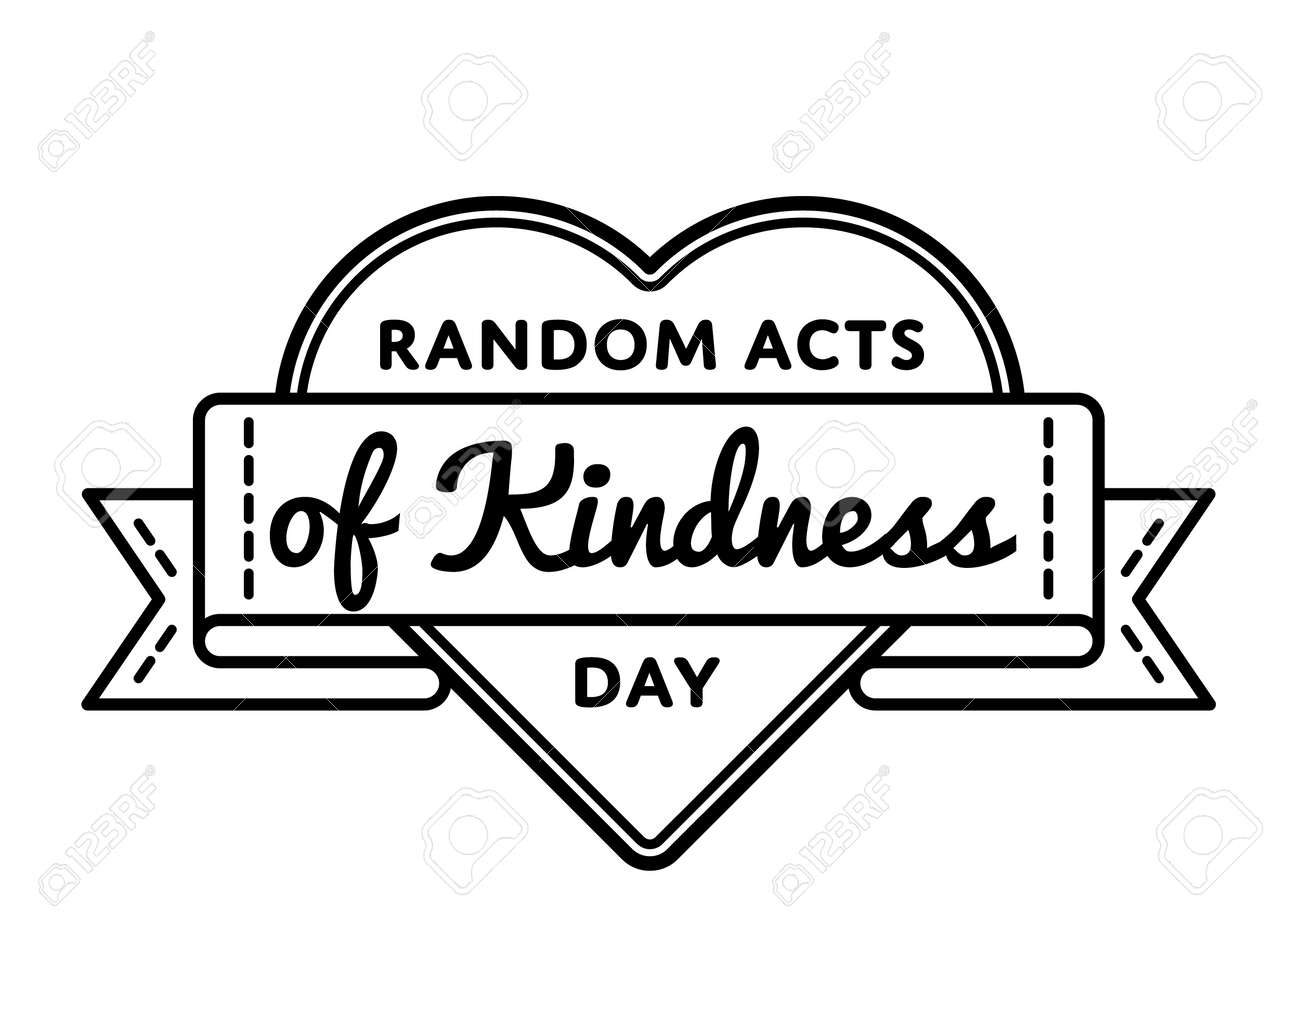 Random Acts Of Kindness Day Greeting Emblem Royalty Free Cliparts